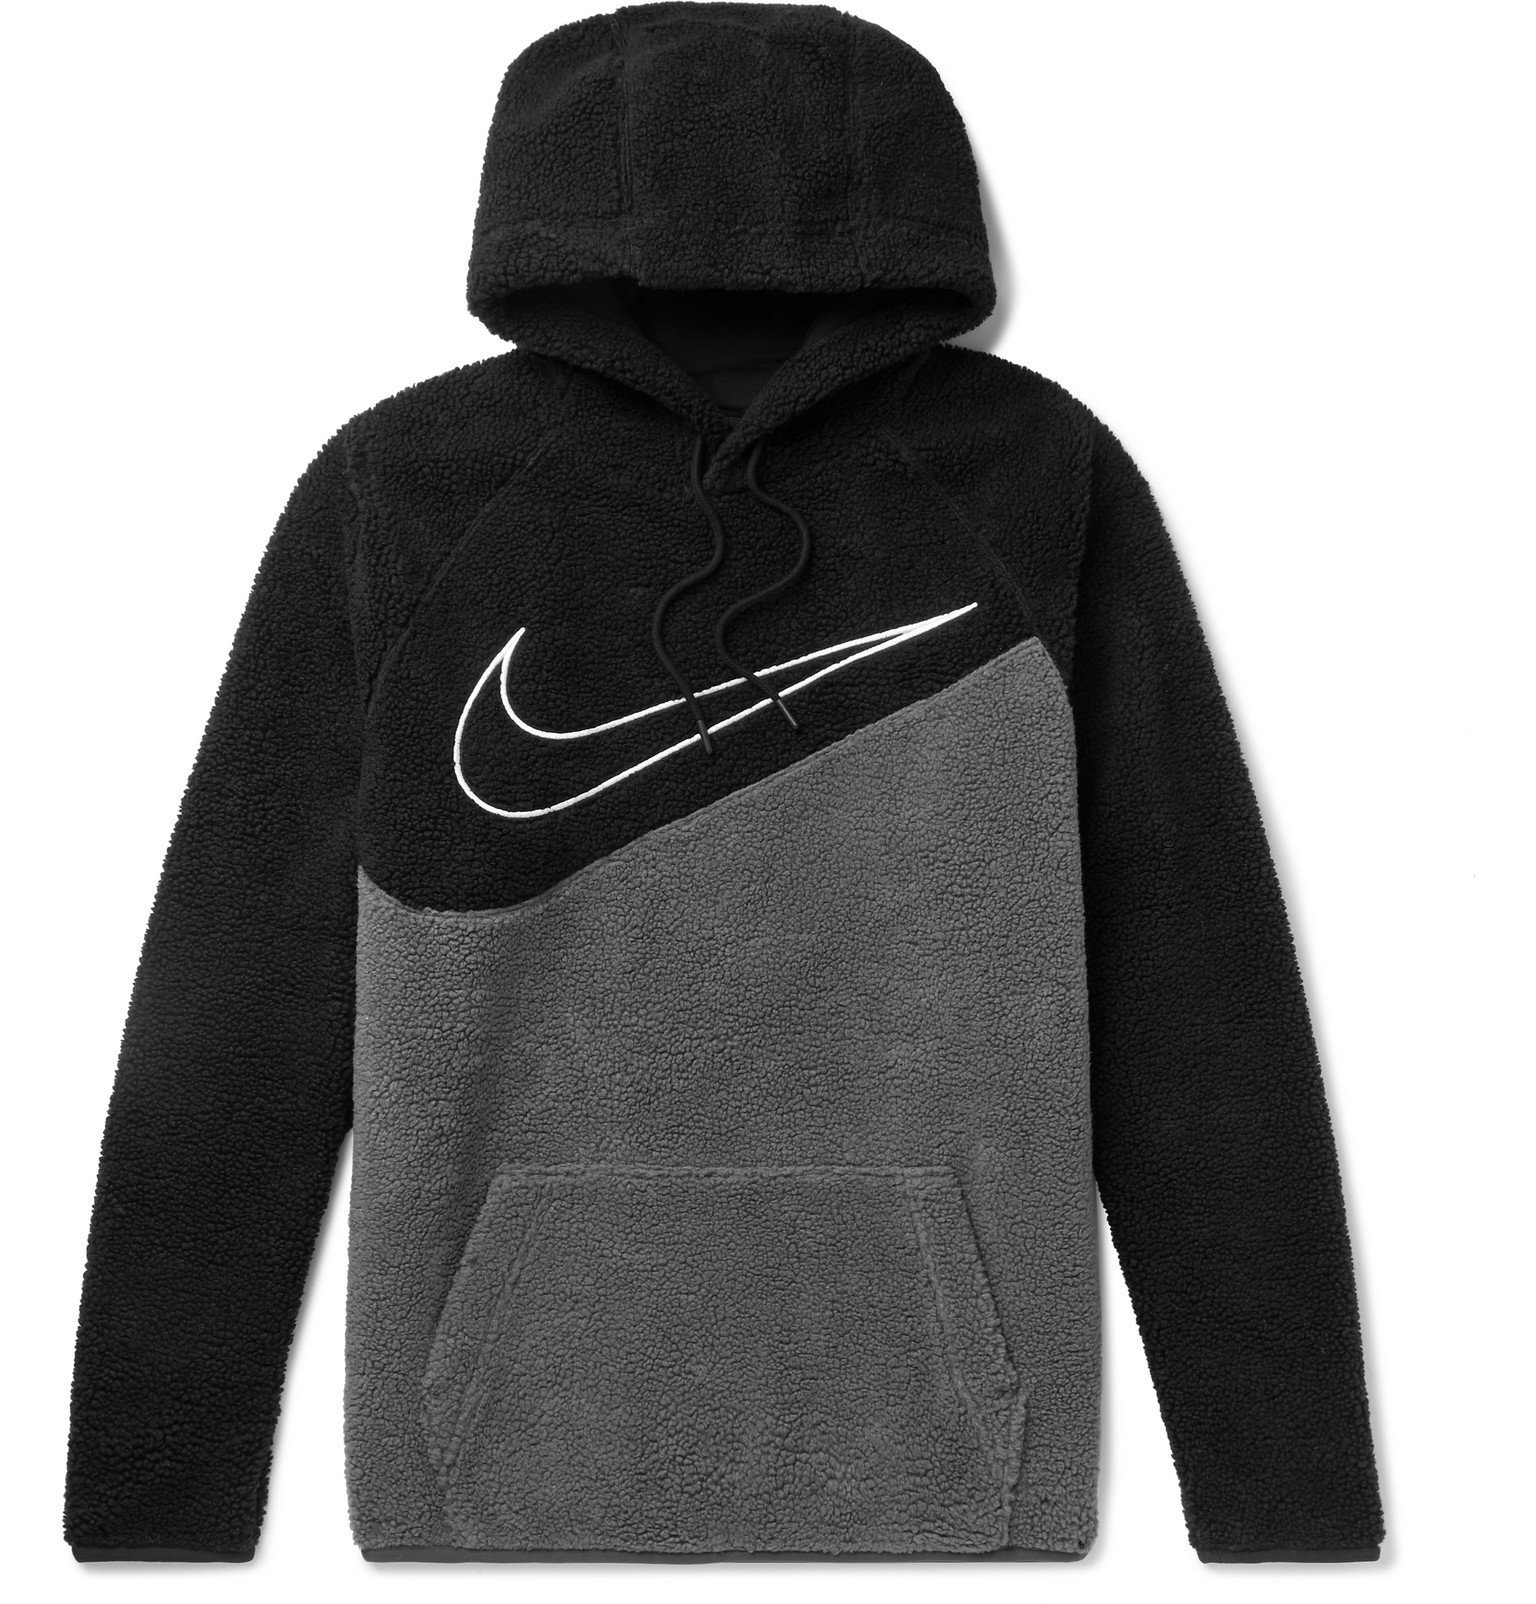 Nike - Sportswear Logo-Embroidered Two-Tone Fleece Hoodie - Black